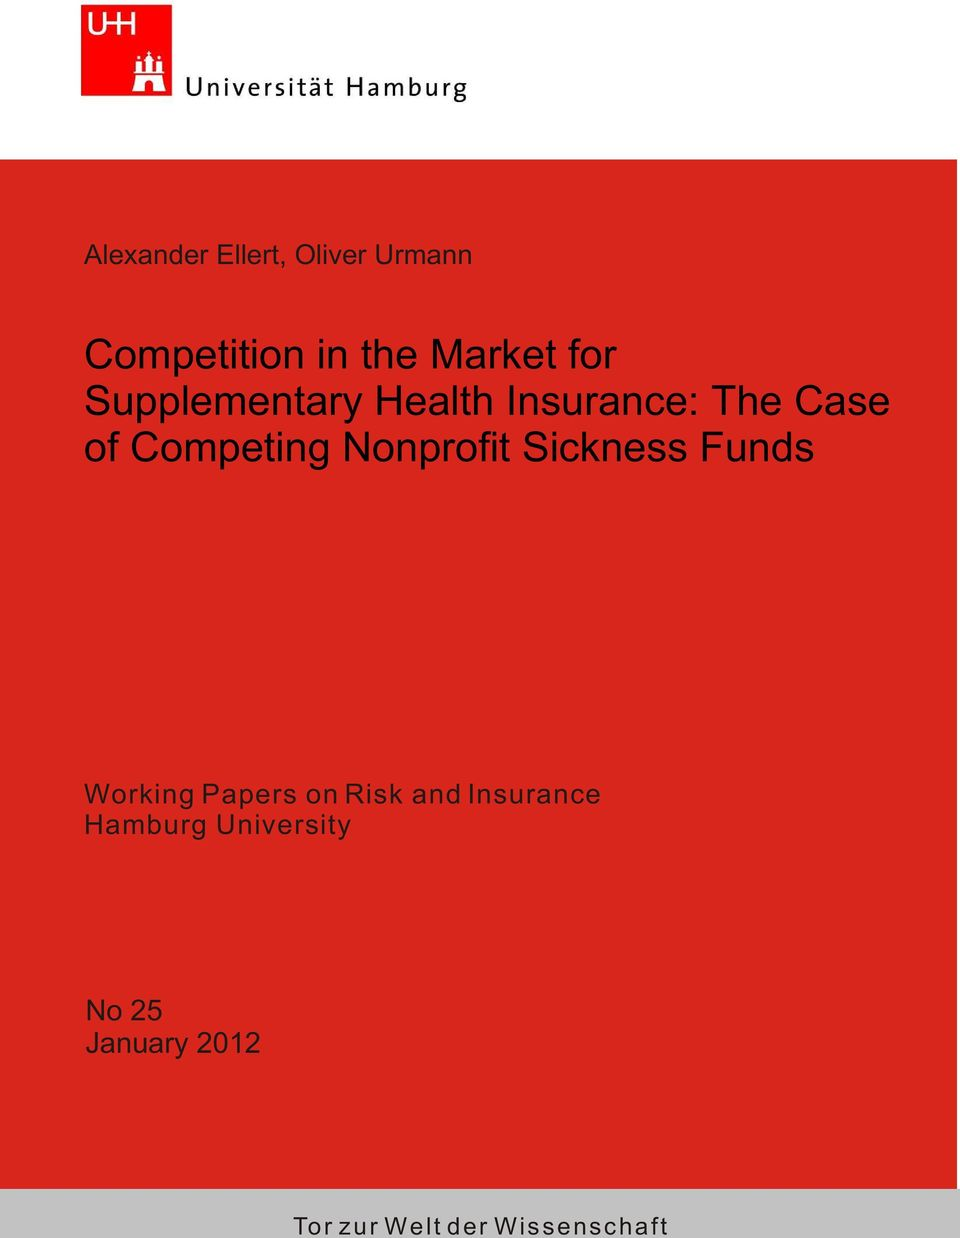 Nonprofit Sickness Funds Working Papers on Risk and Insurance